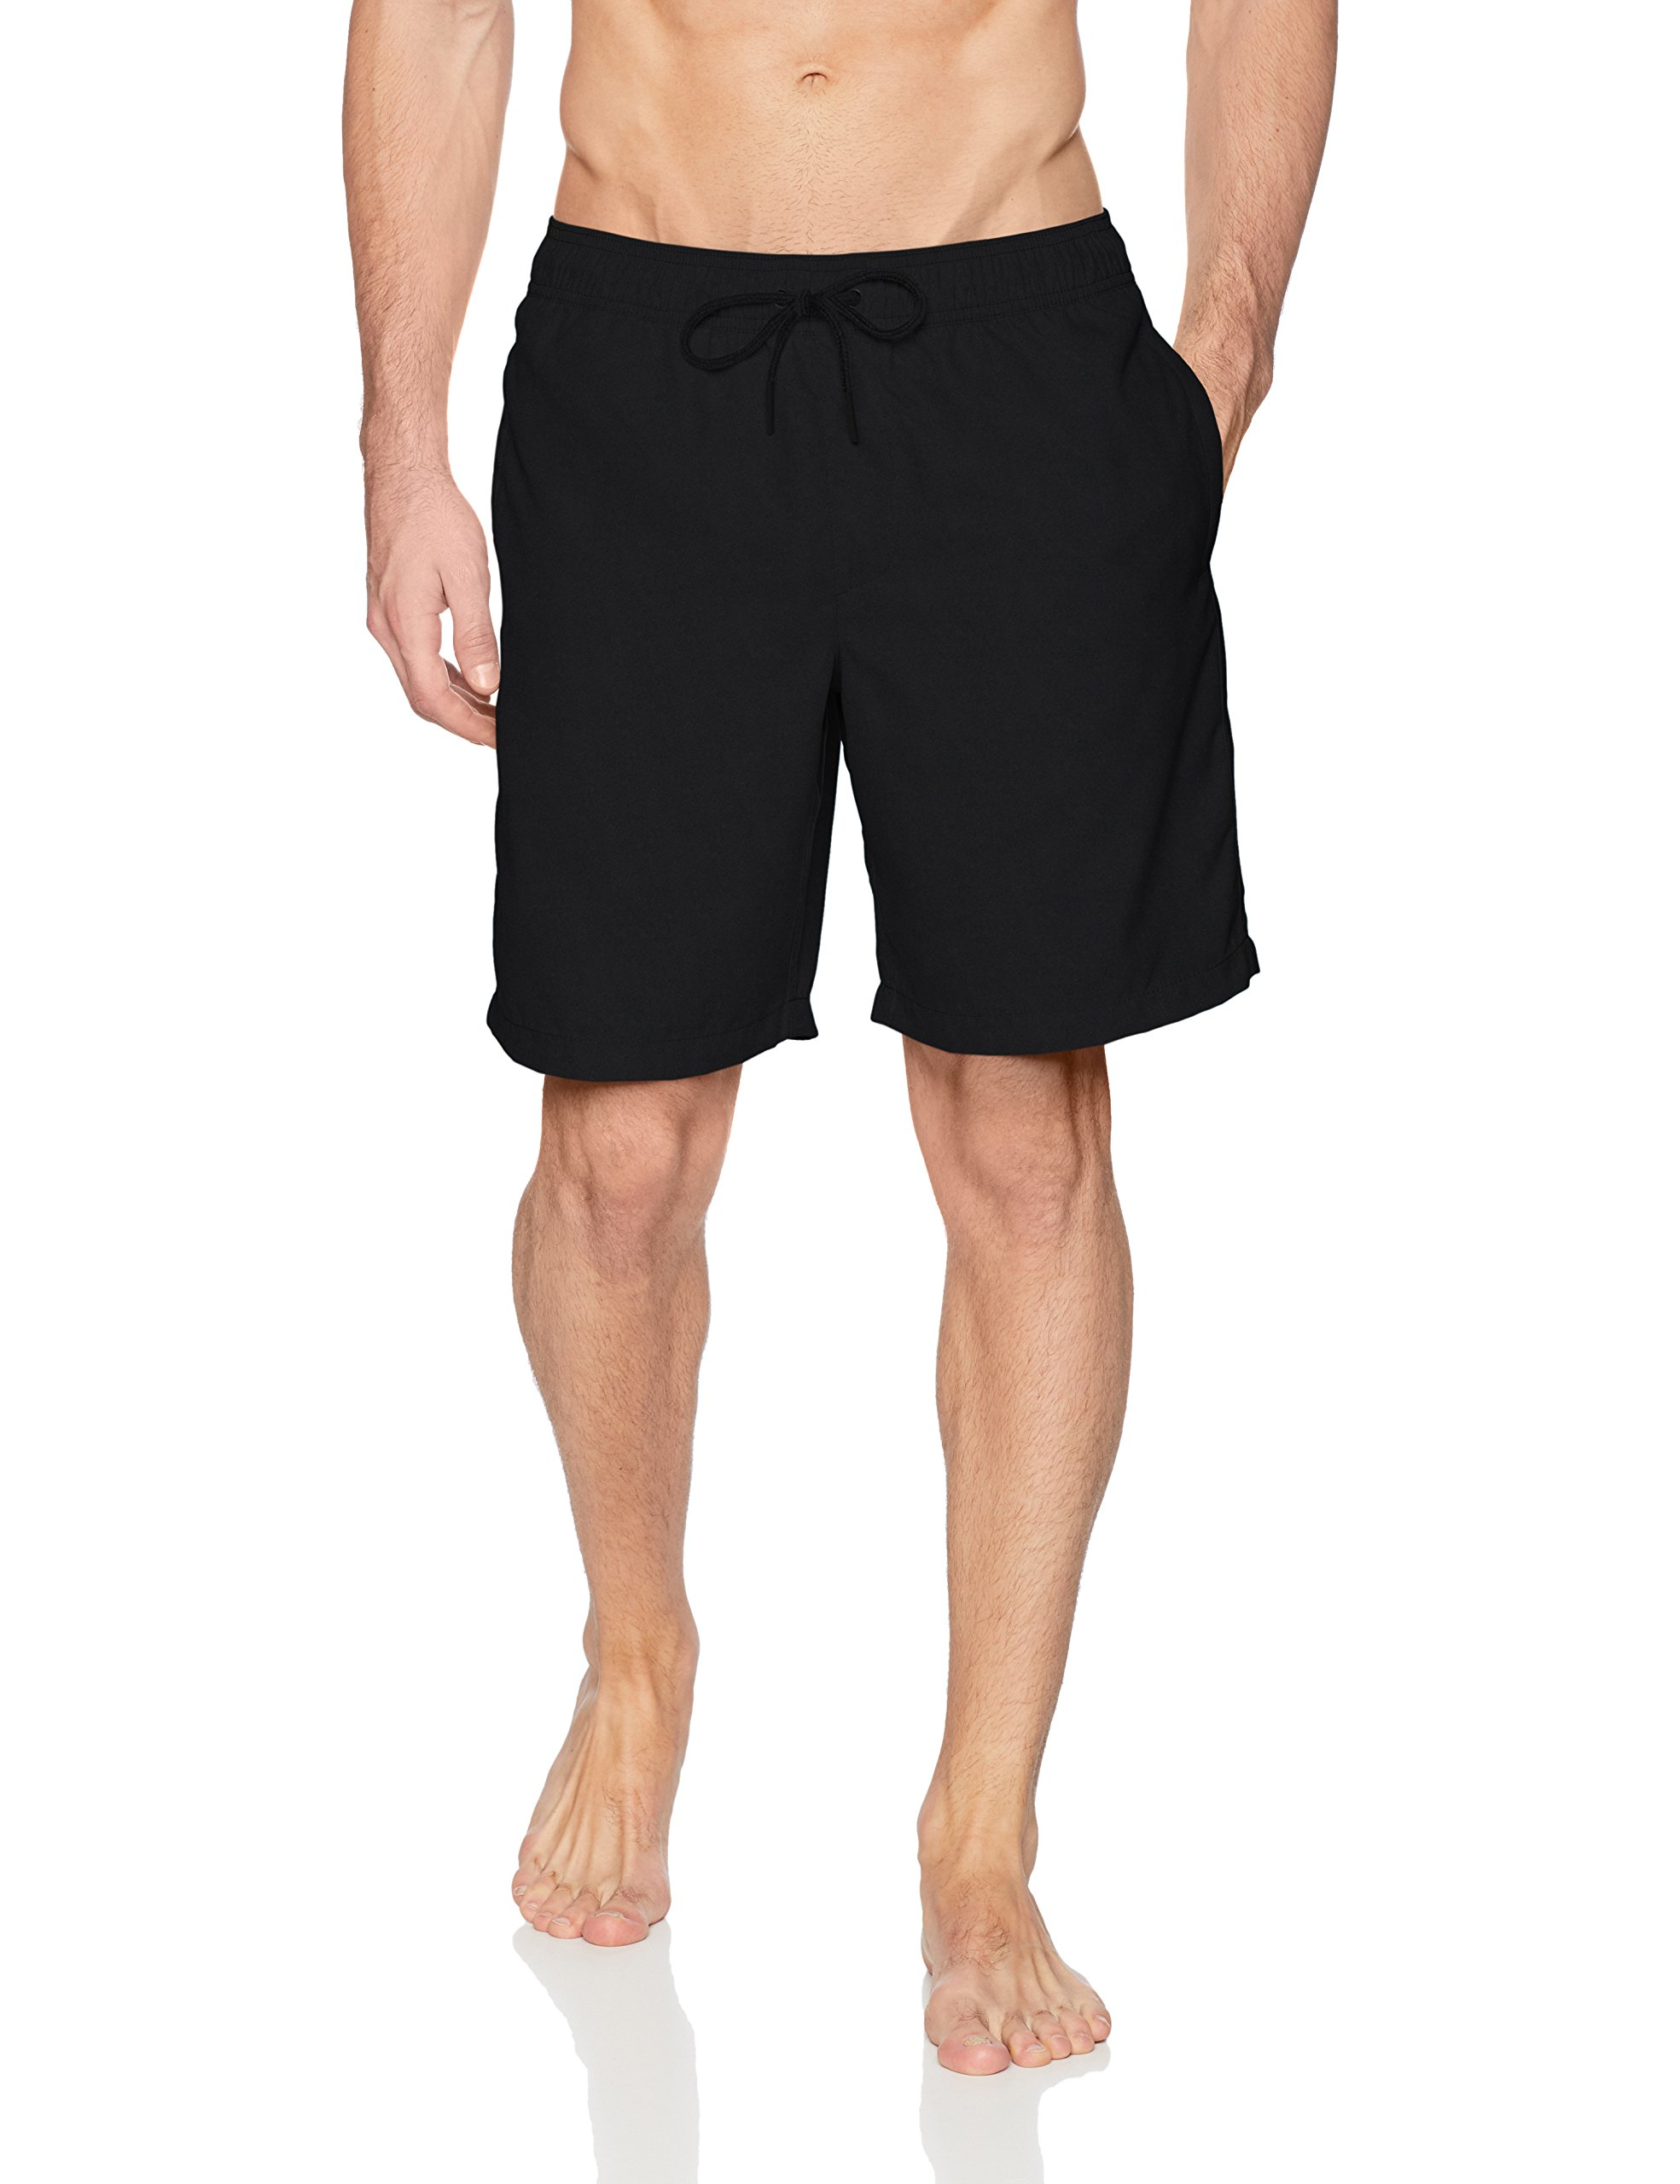 Amazon Essentials Men's Quick-Dry Solid 9'' Swim Trunk, Black, Medium